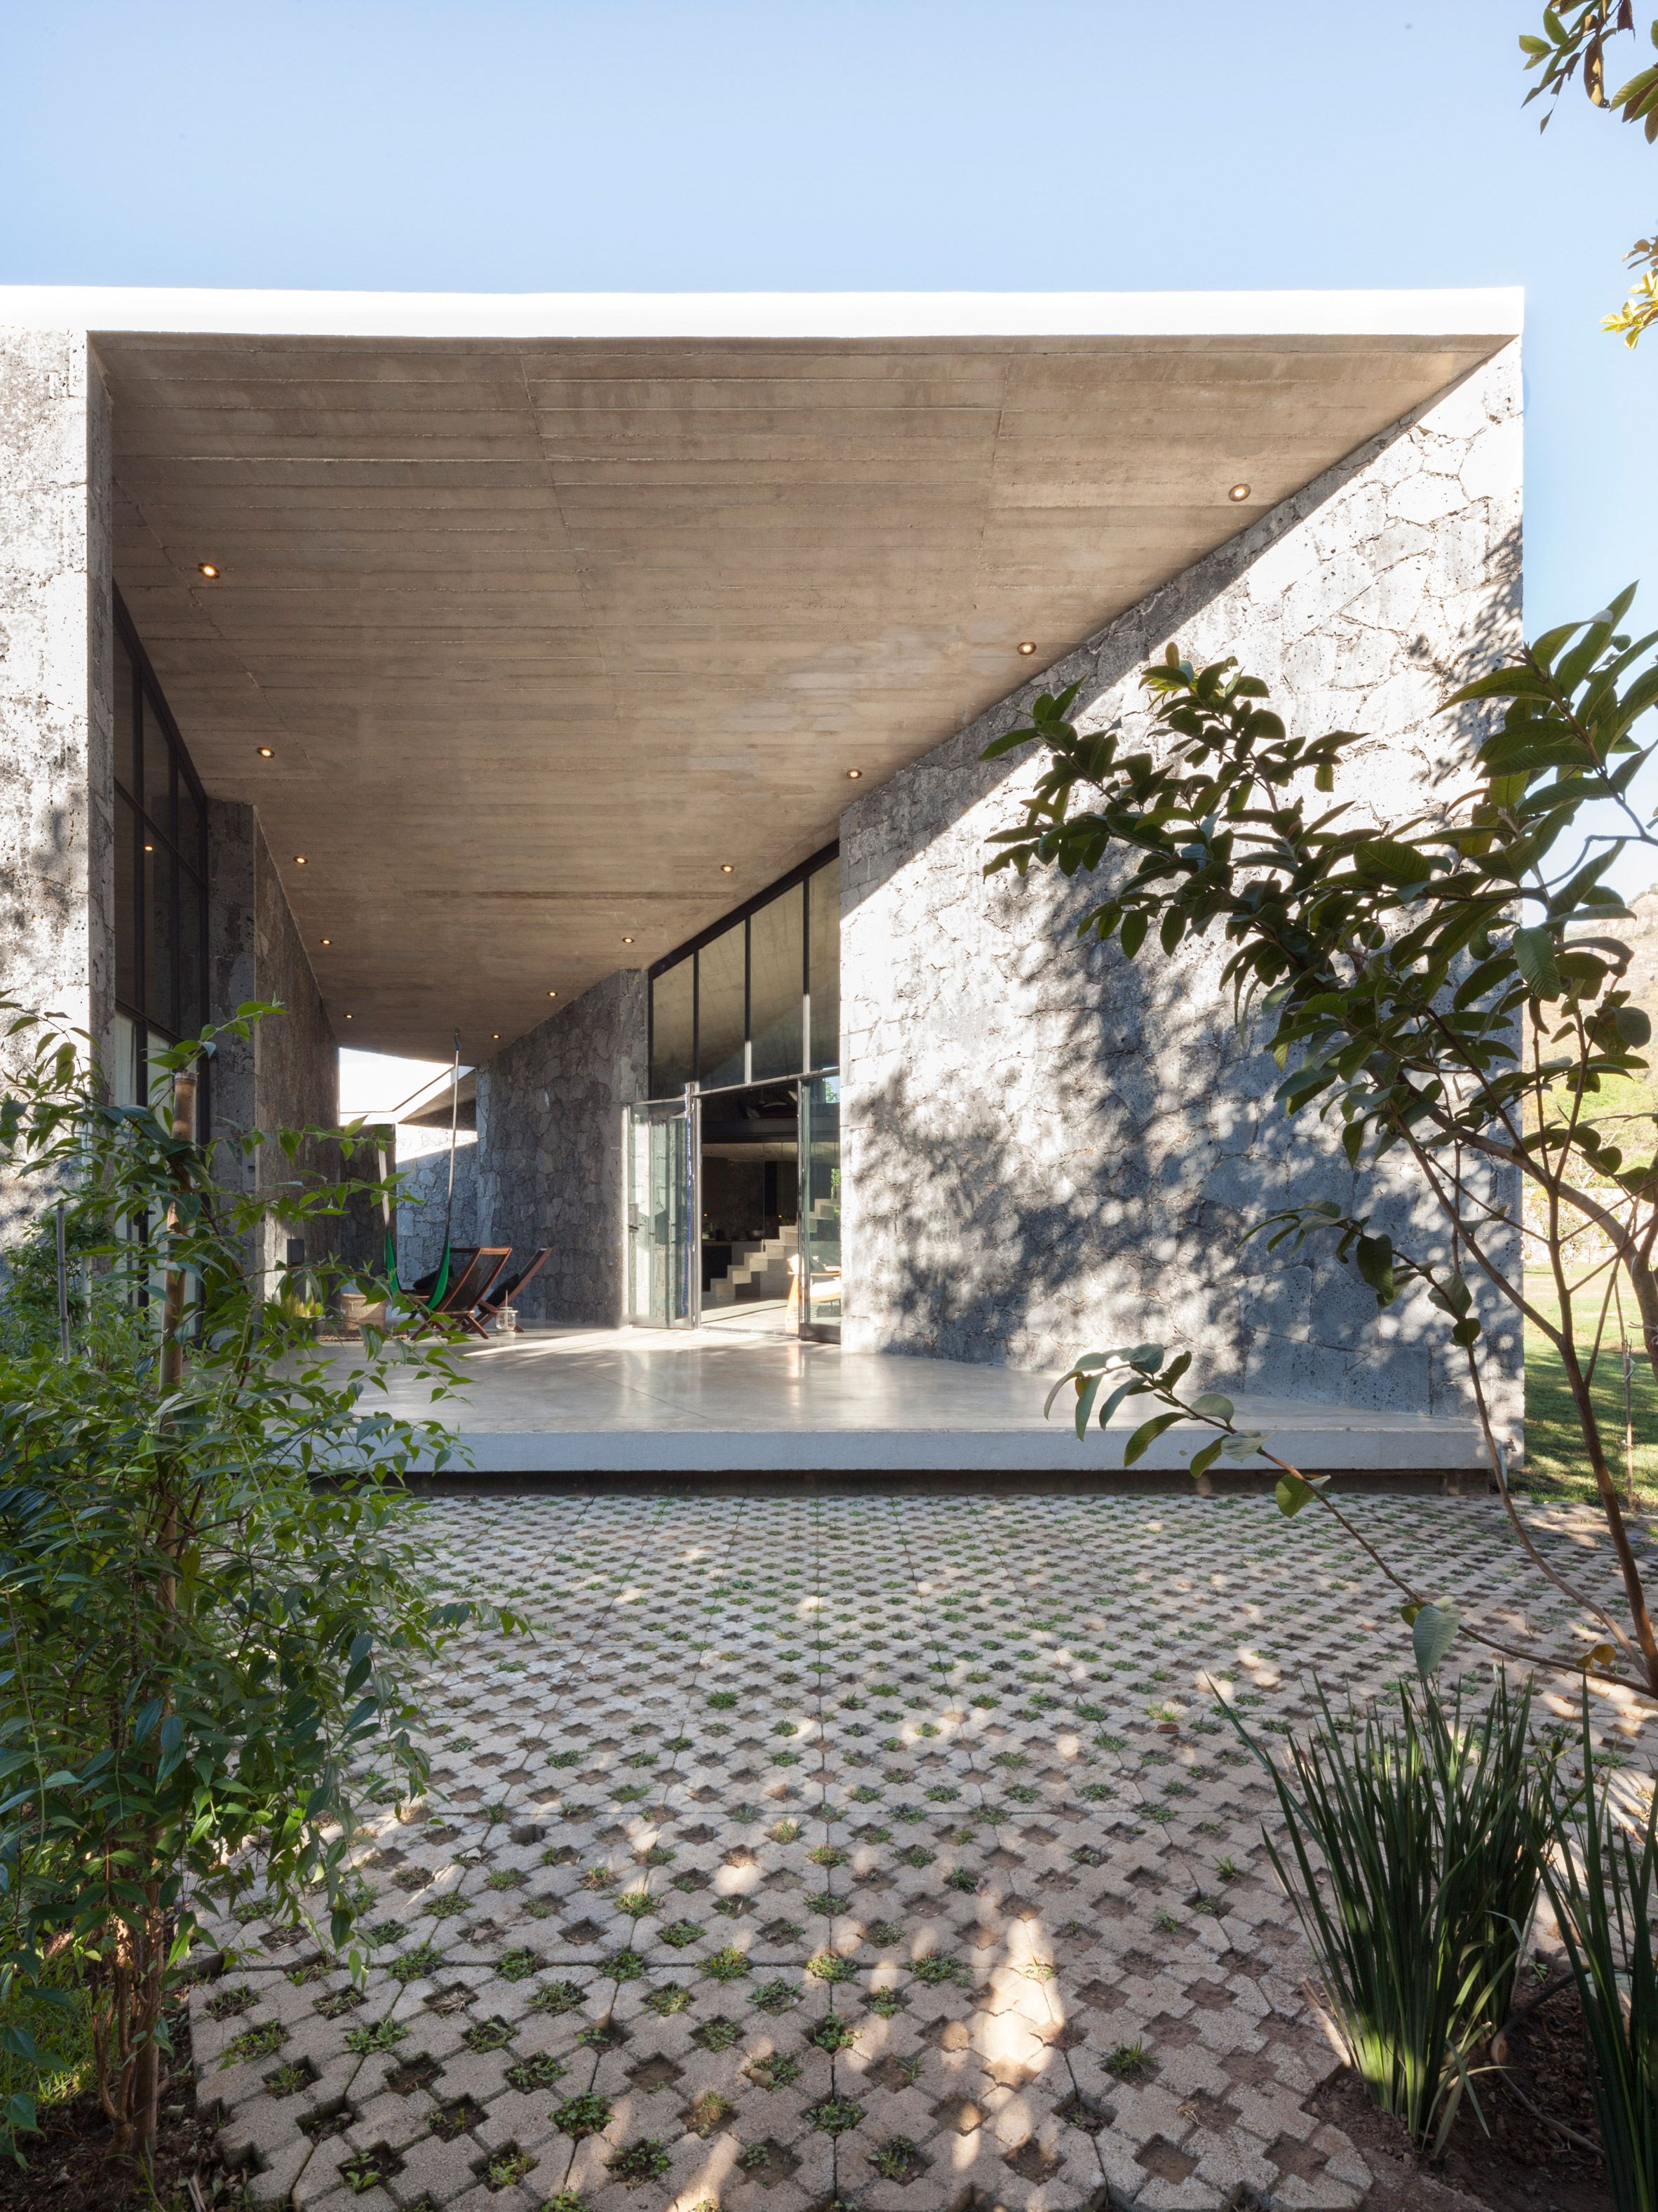 MA House by Cadaver & Sola-Morales, outside Mexico City ...